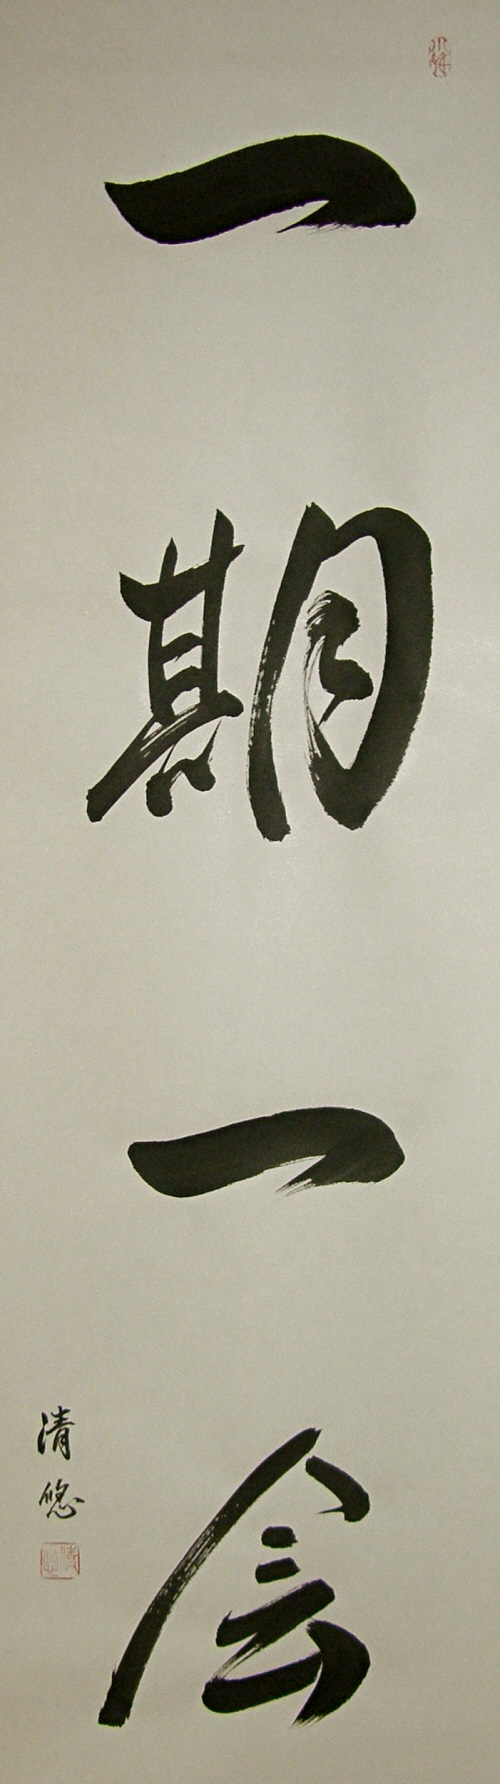 Once in a Lifetime, Japanese Shodo Kanji Drawing